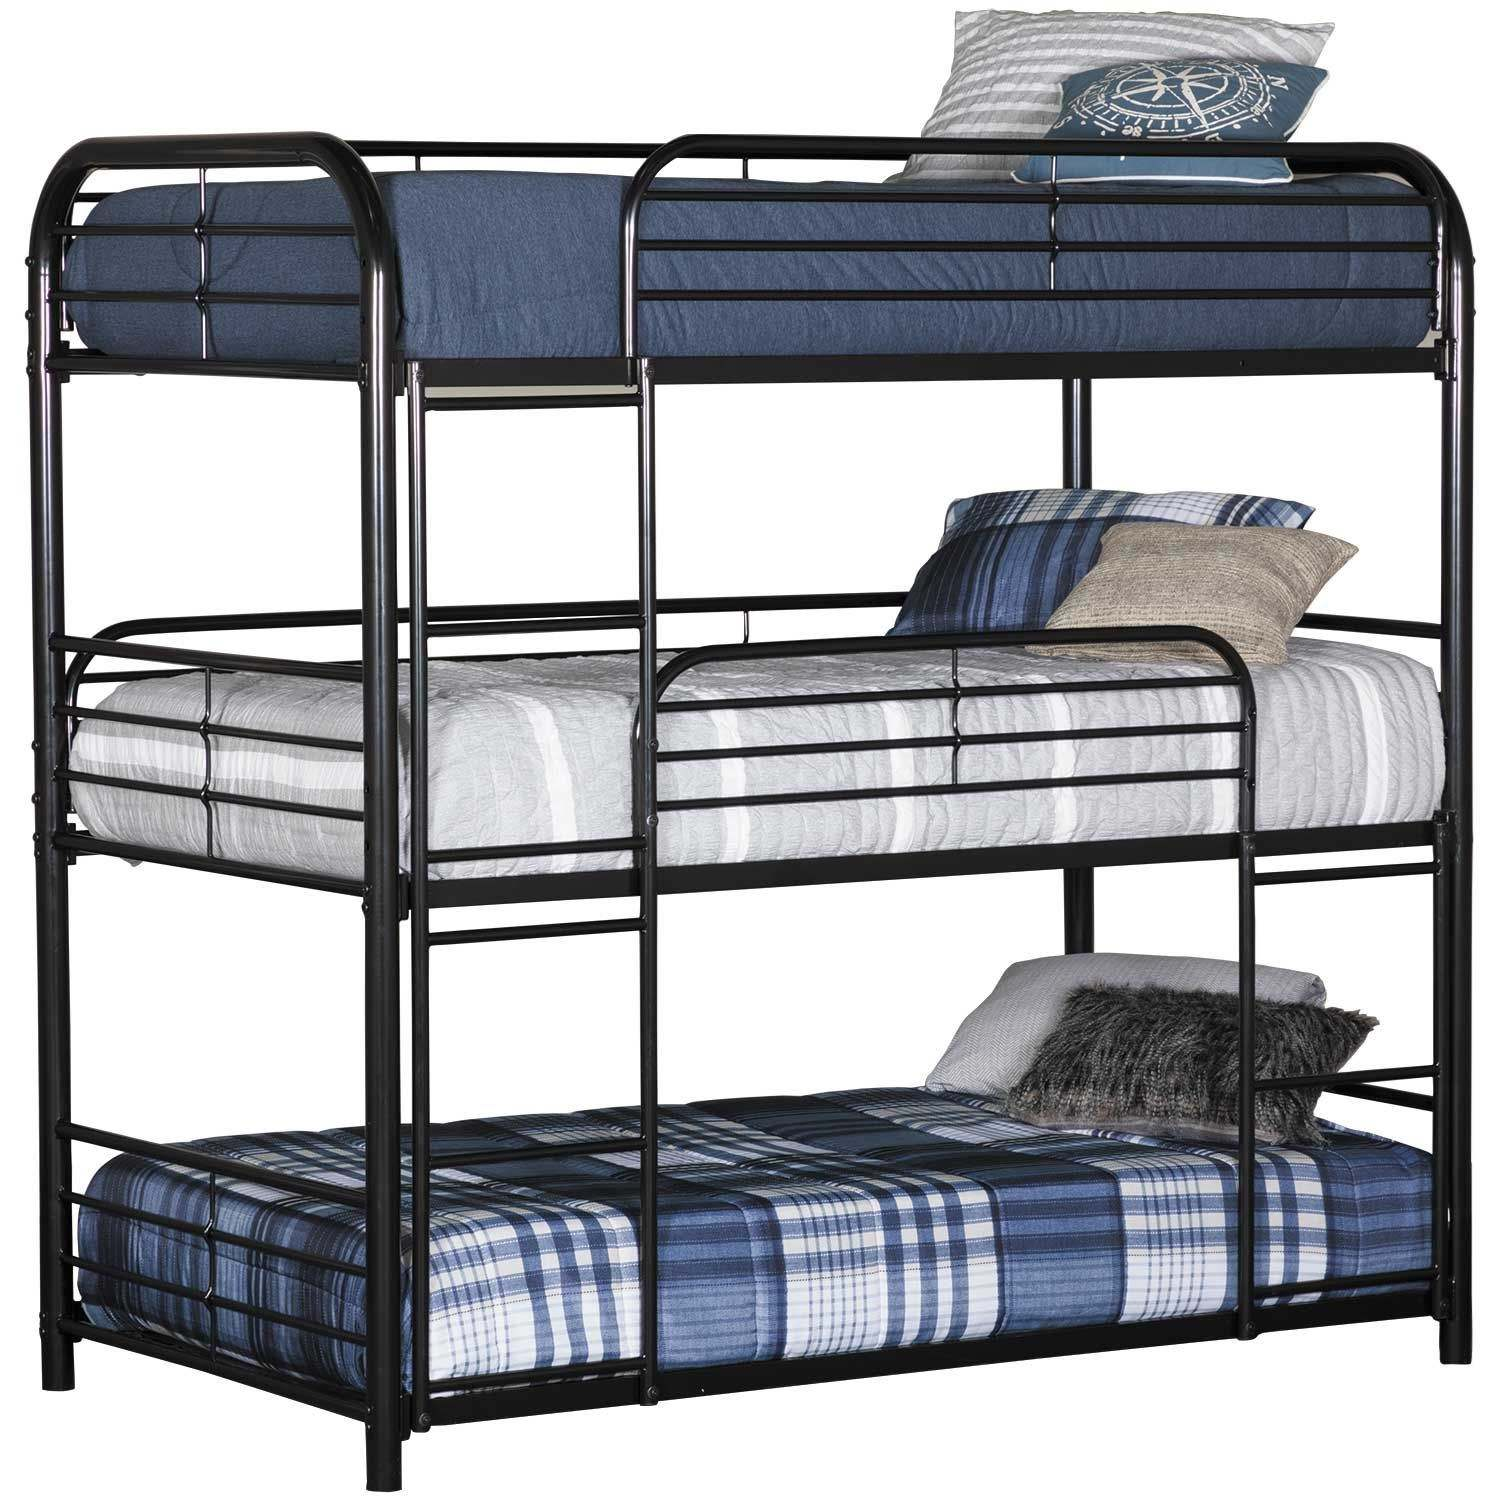 Triple bunk bed metal bunk beds for adults iron bunk bed literas de hierro tempat tidur susun 3 besi